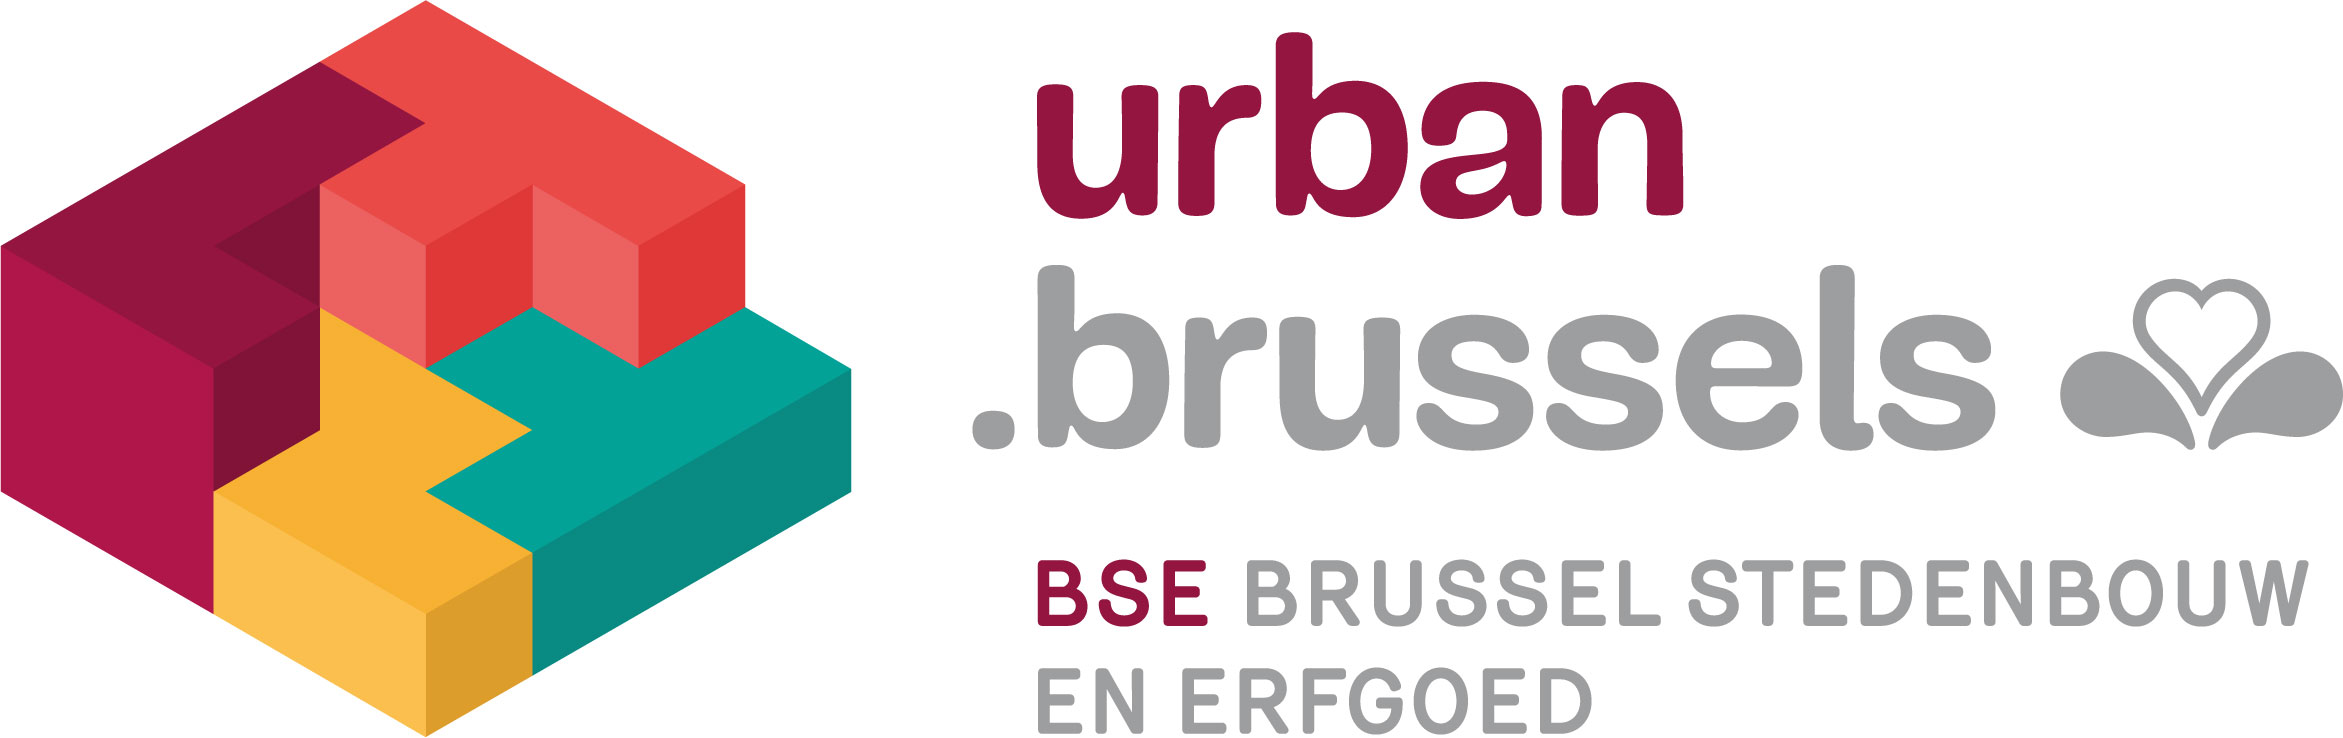 WELCOME URBAN.BRUSSELS!